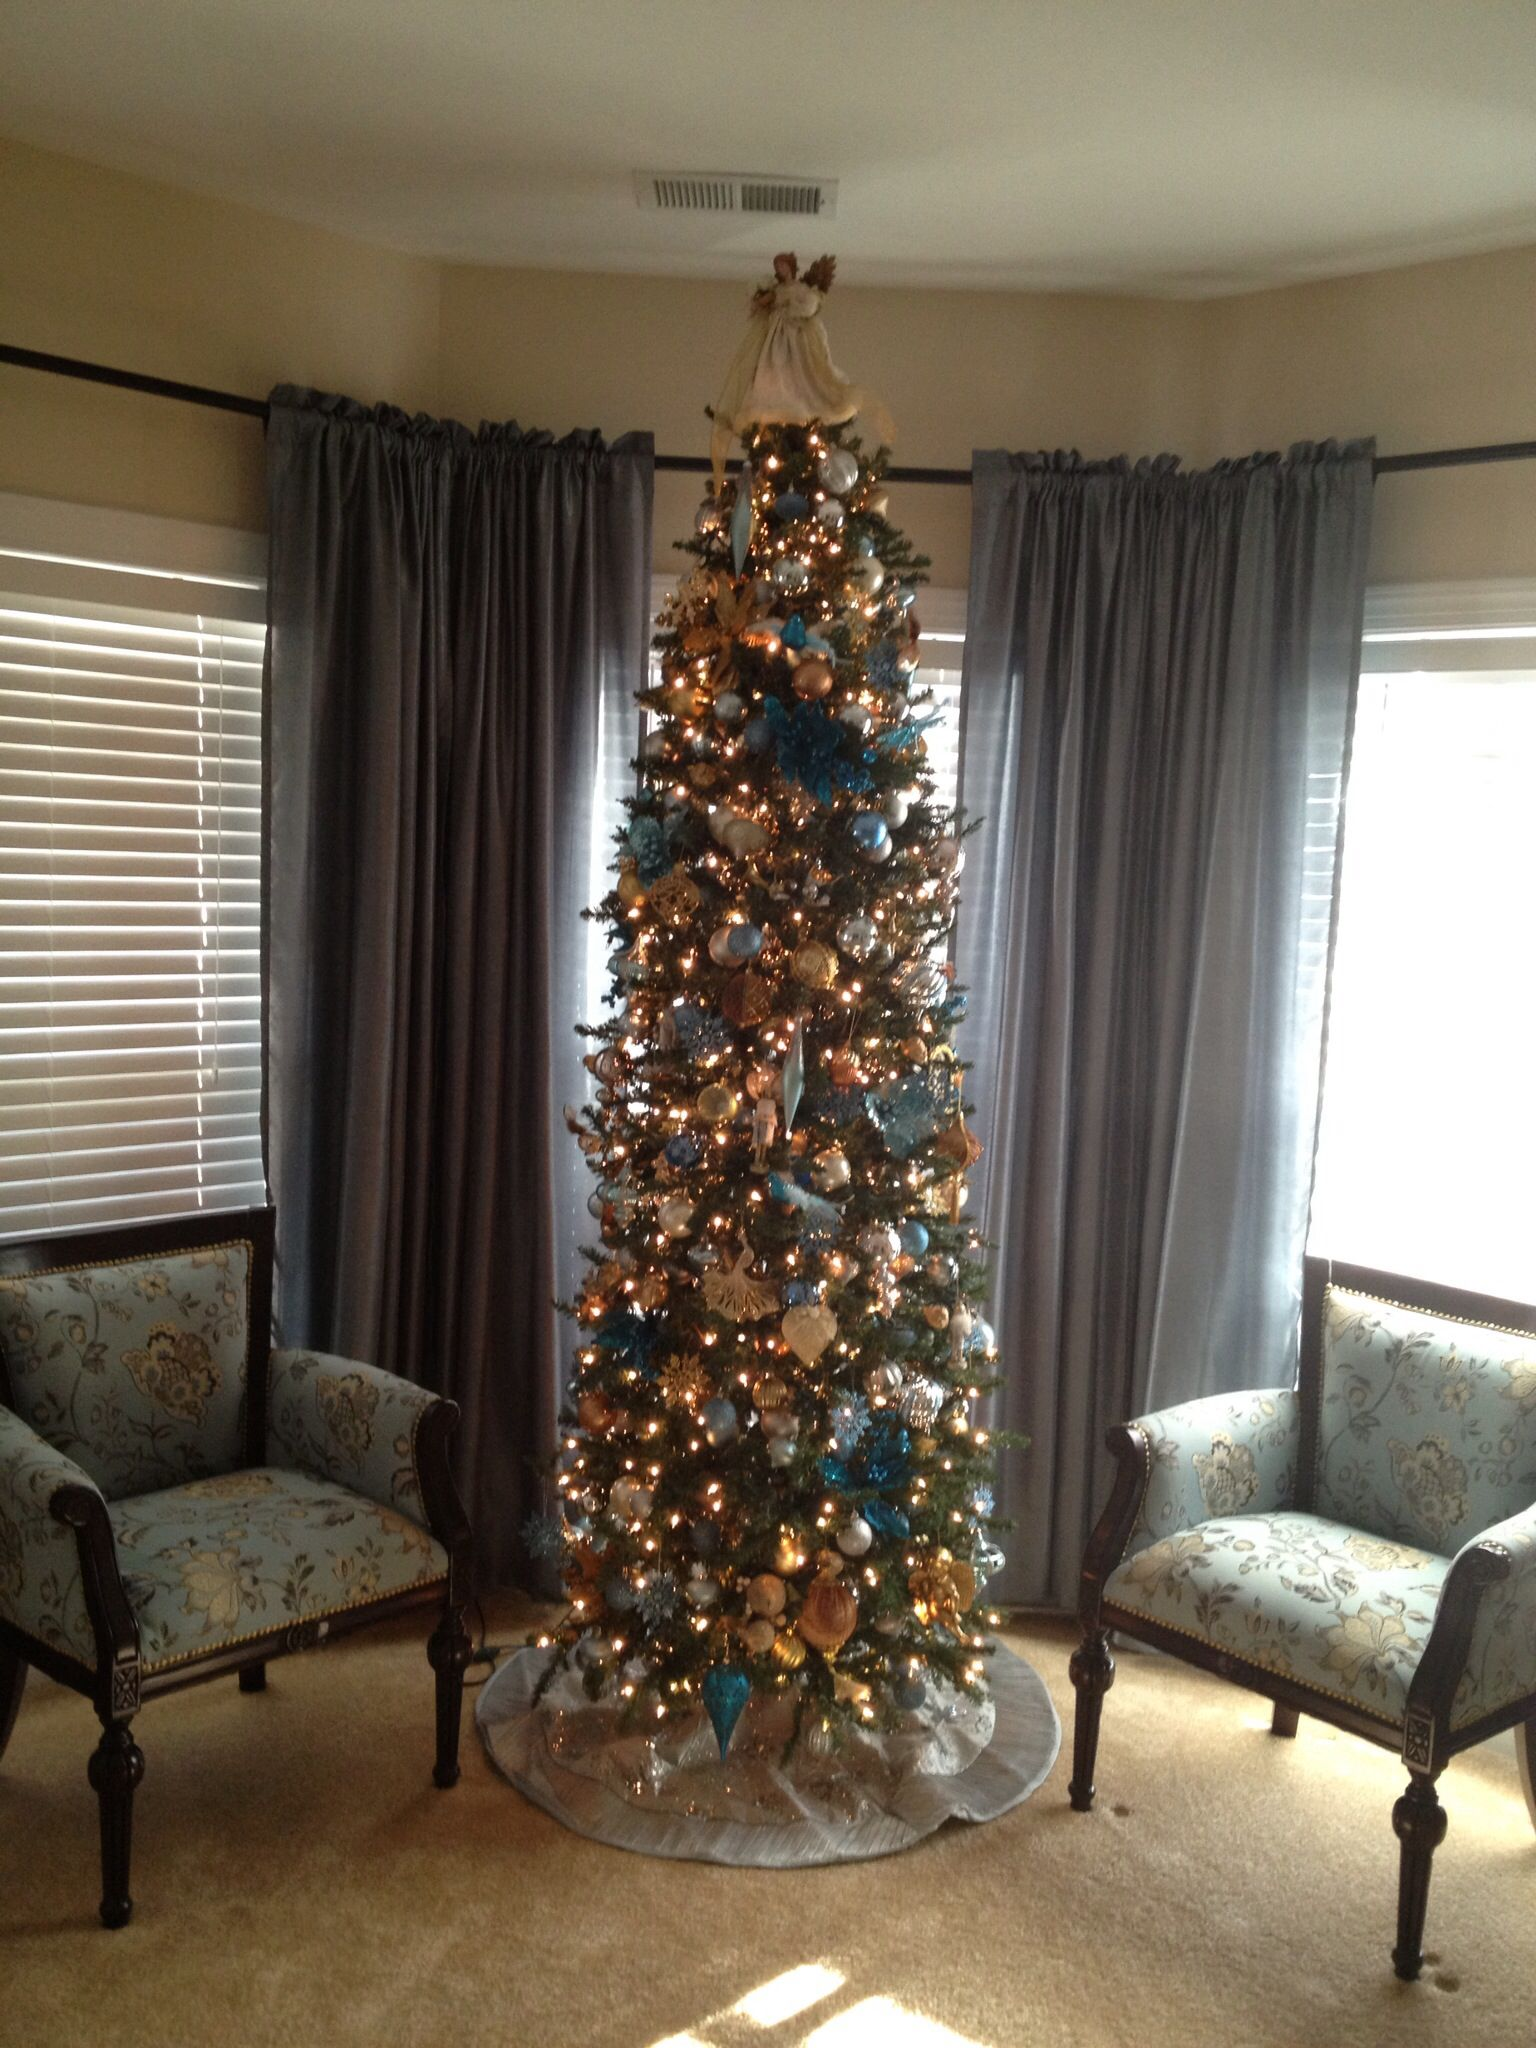 Christmas Tree With Blue, Gold, Silver And Cream Ornaments